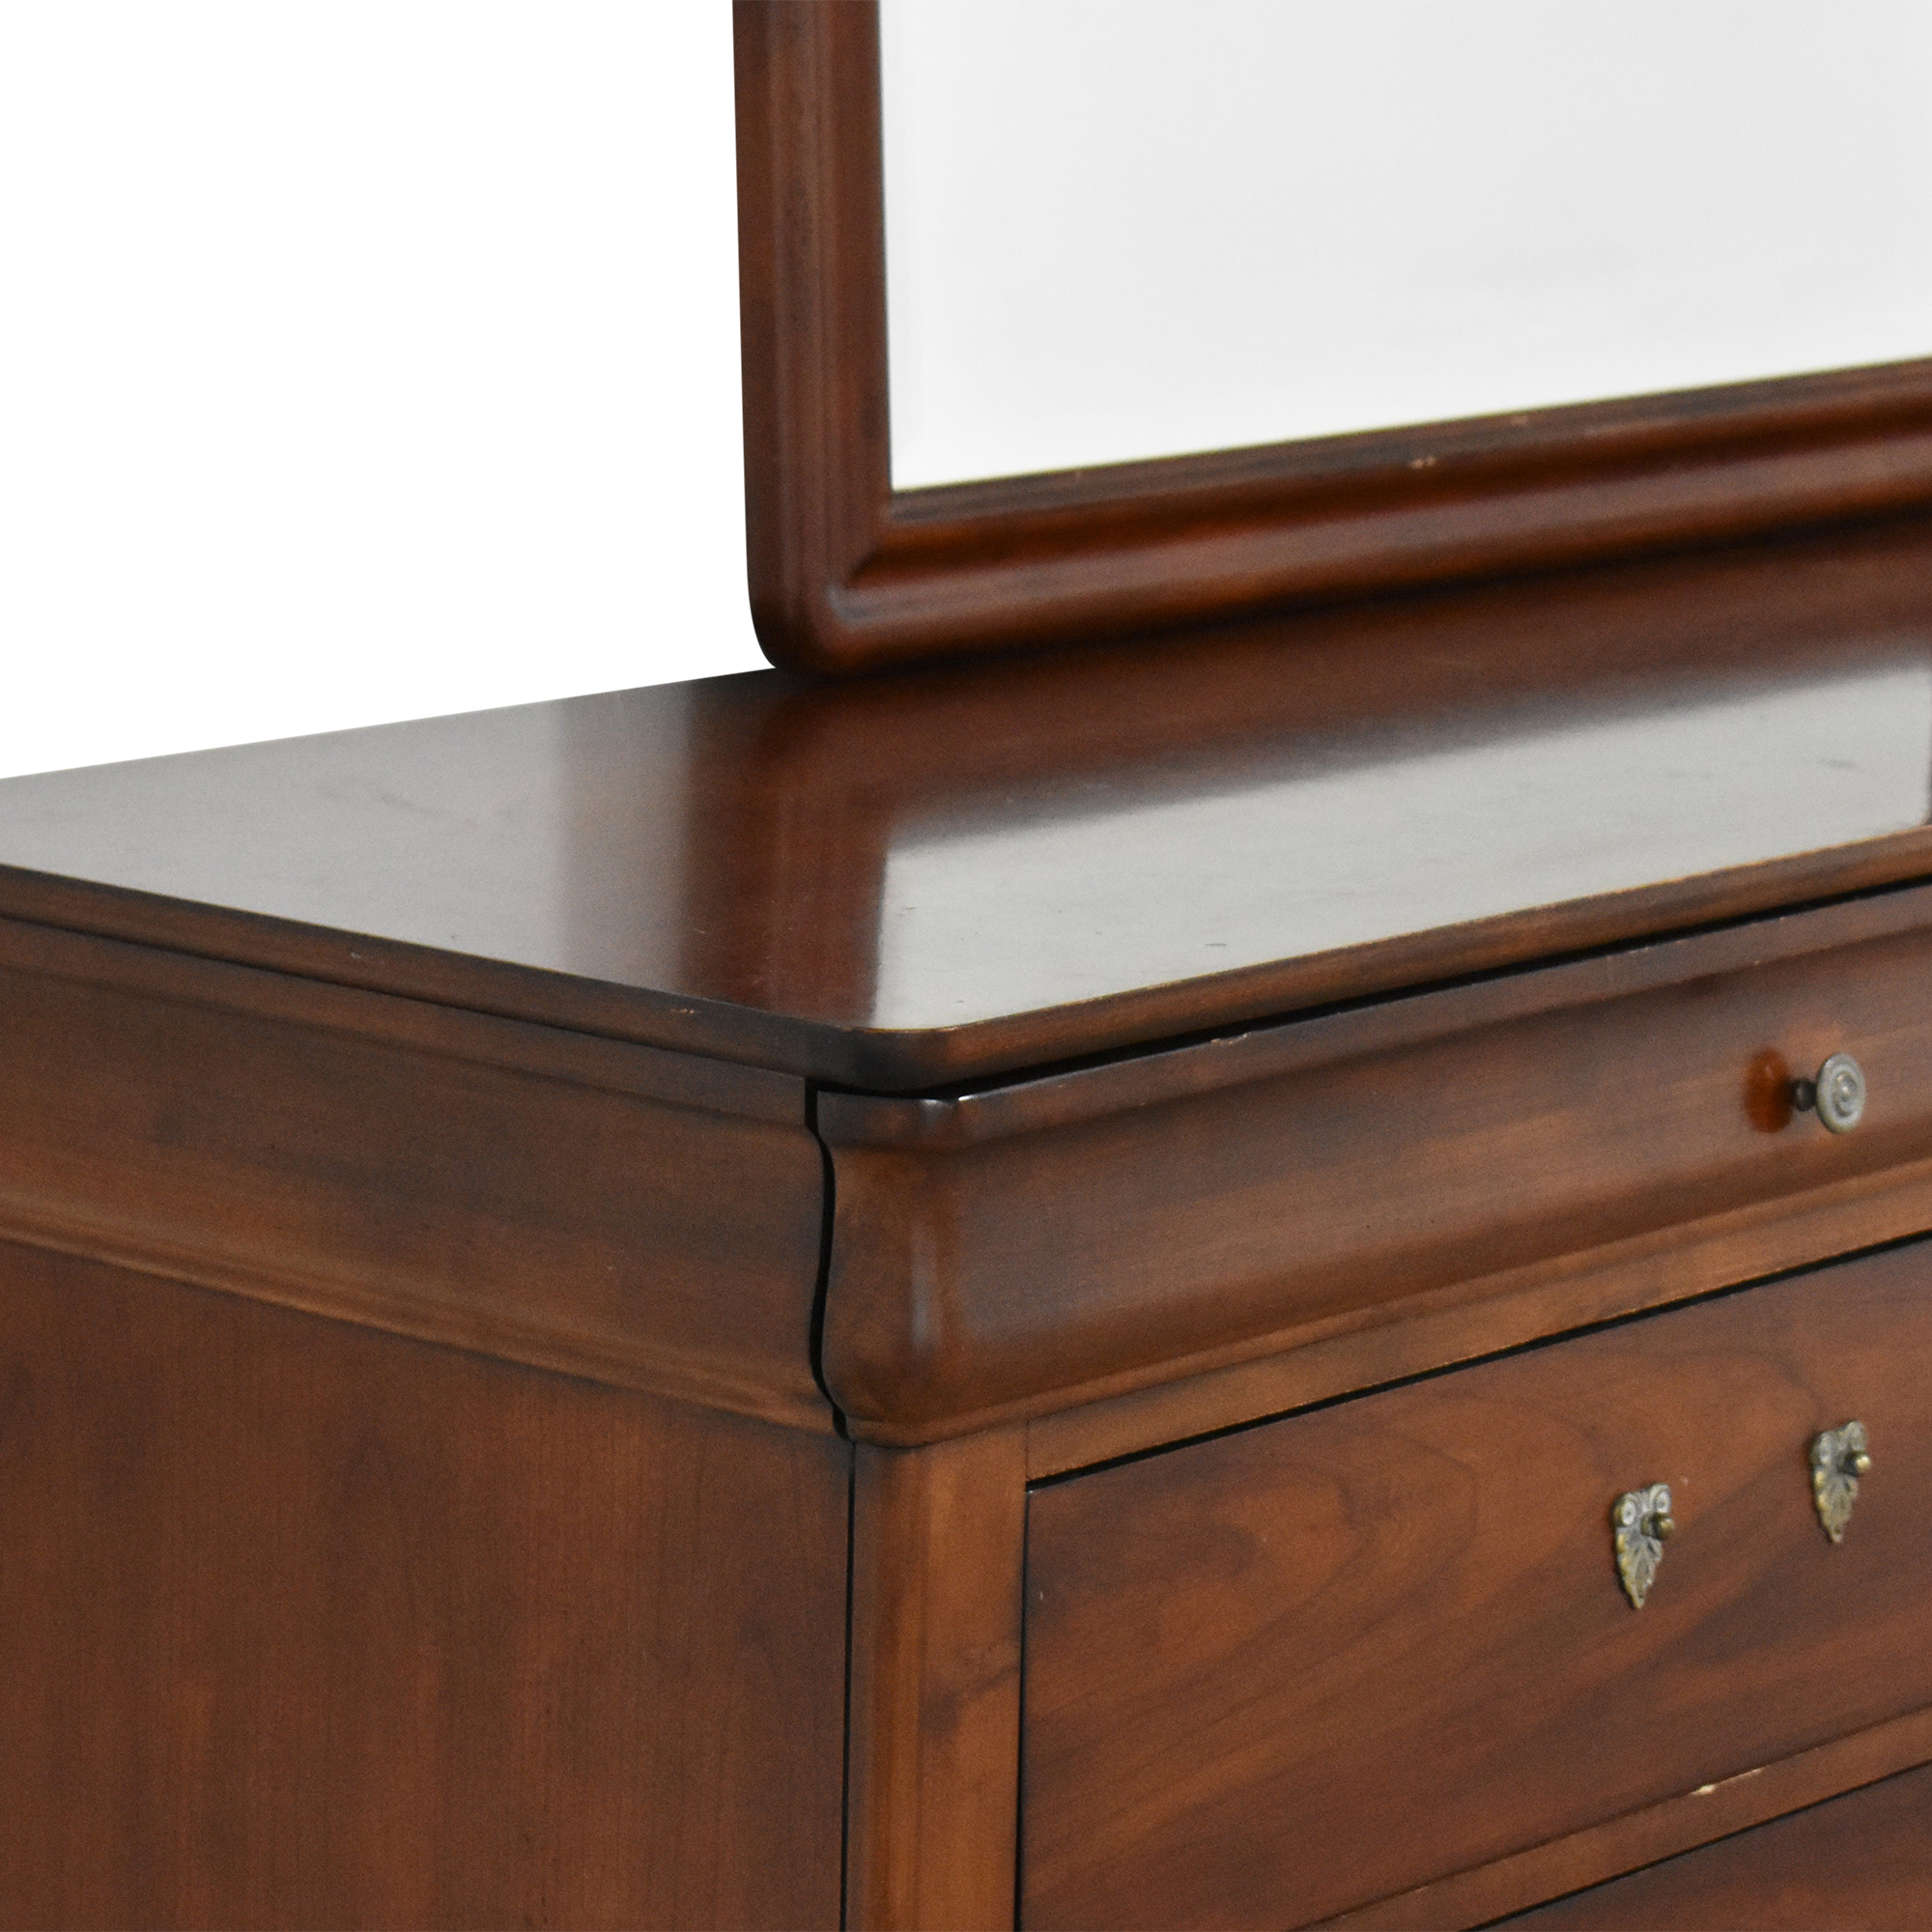 Drexel Heritage Drexel Heritage Delshire Double Dresser with Mirror pa